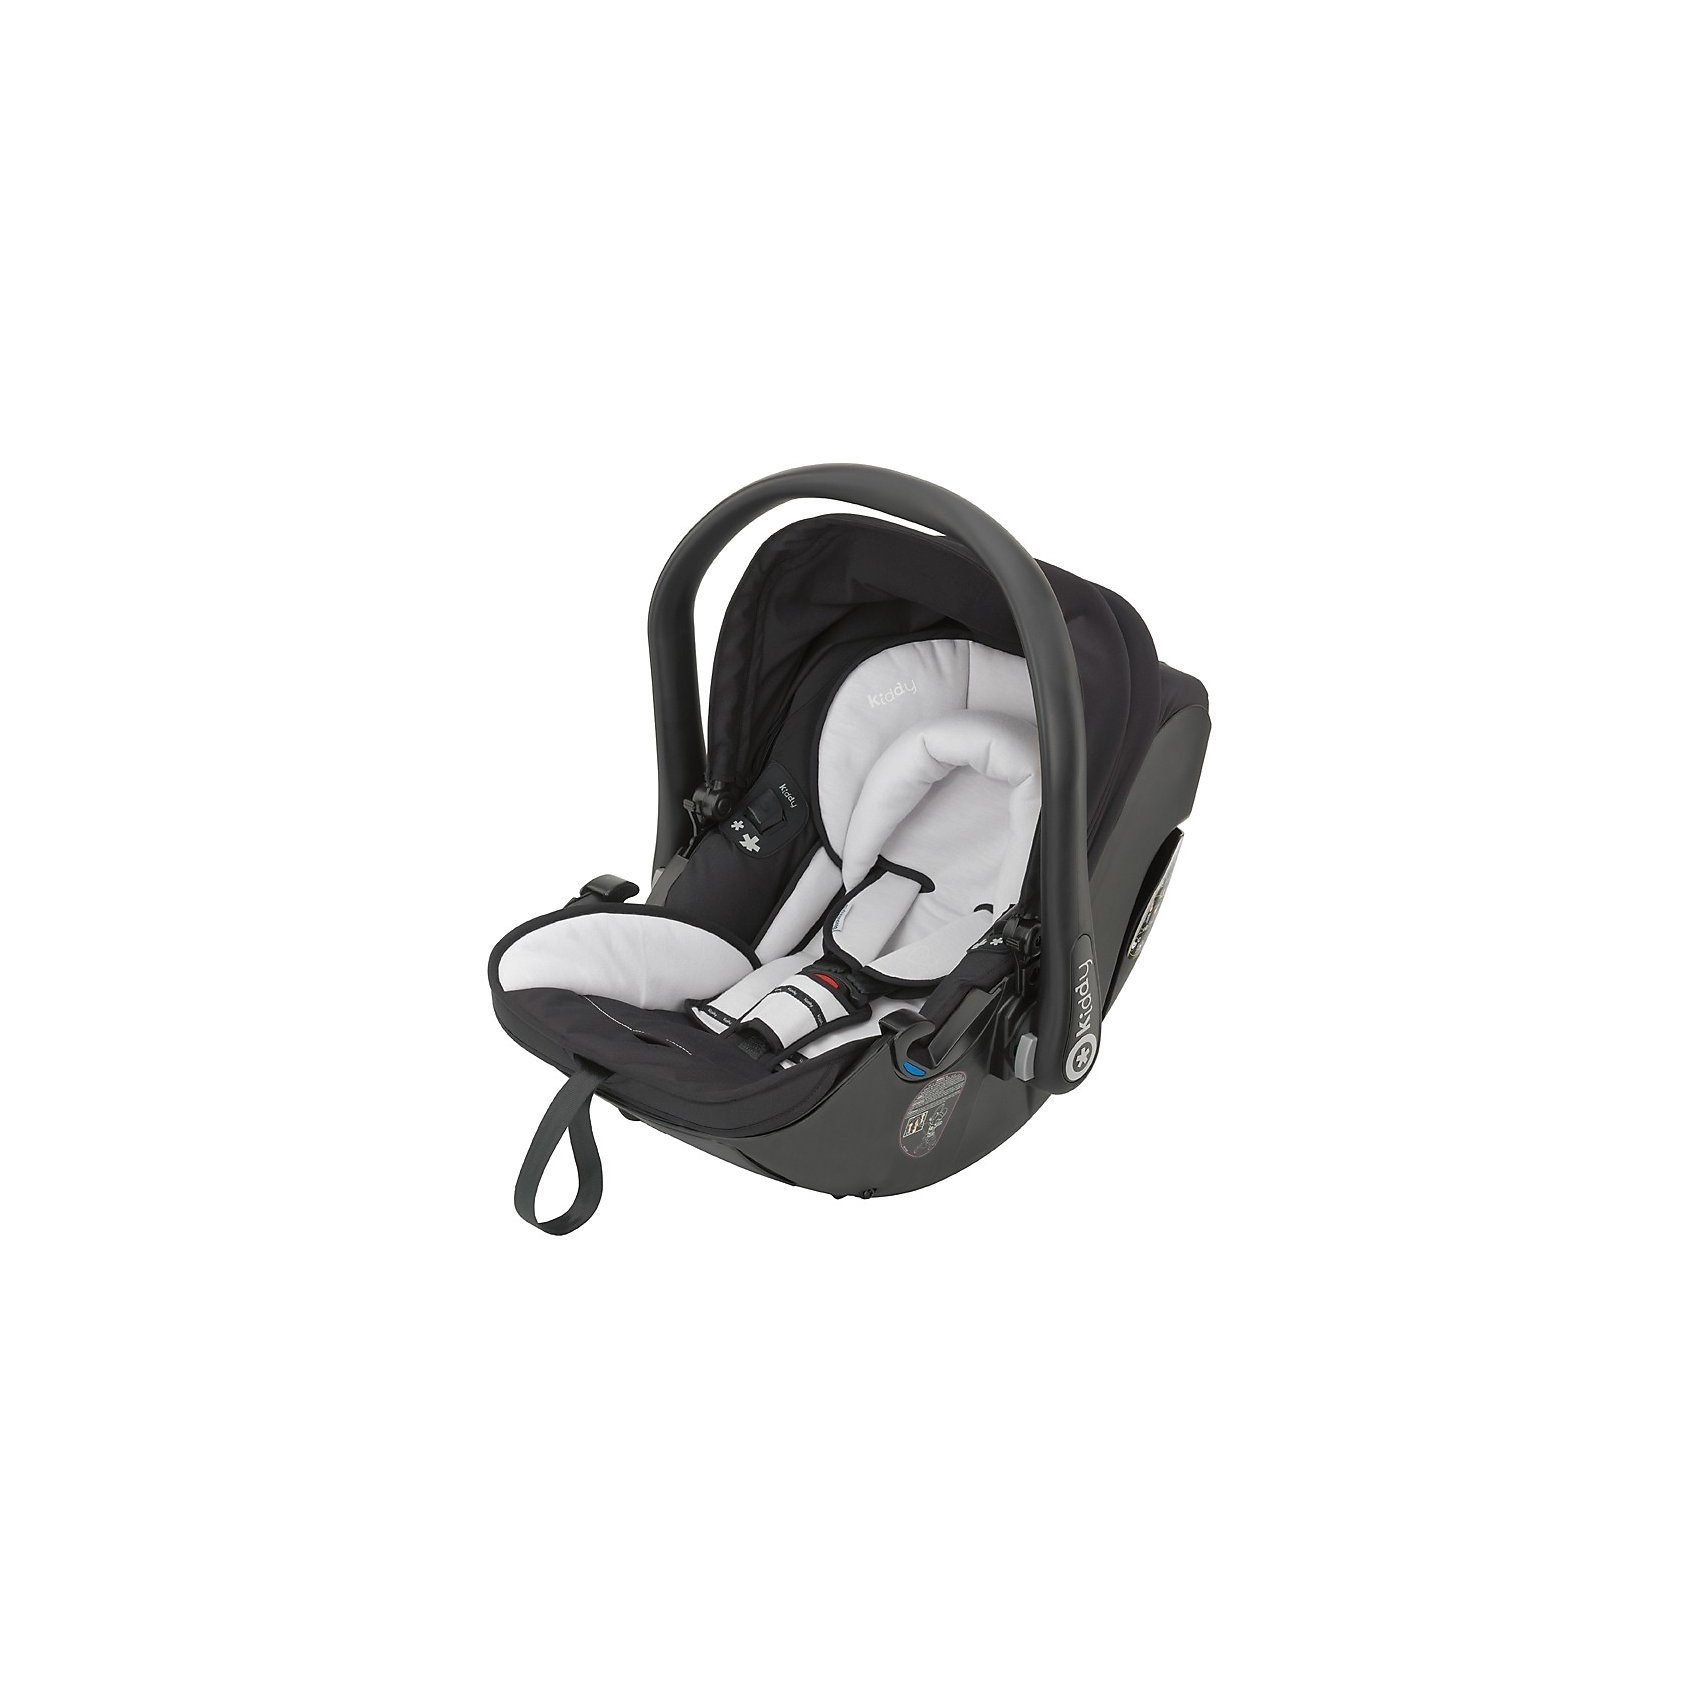 Kiddy Babyschale Evolution Pro 2, Stone, 2015